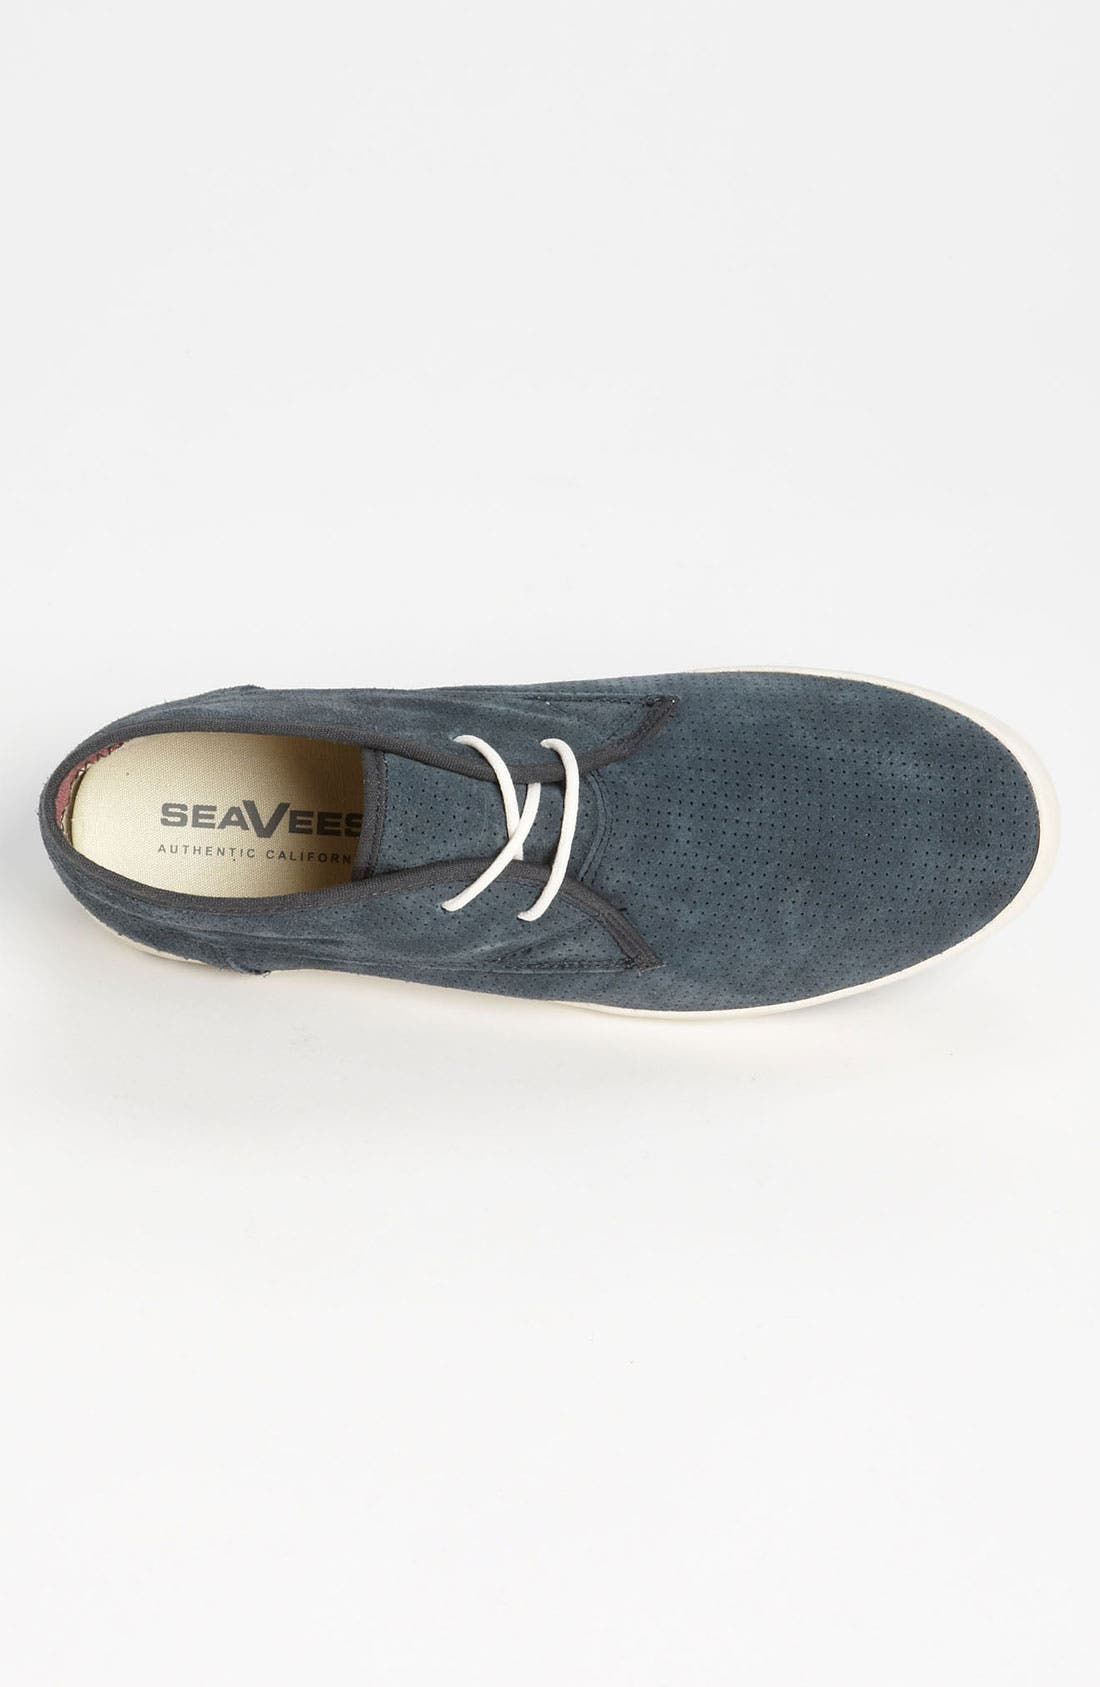 Alternate Image 3  - SeaVees '04/60 Two-Eye Floater' Perforated Chukka Boot (Online Only)